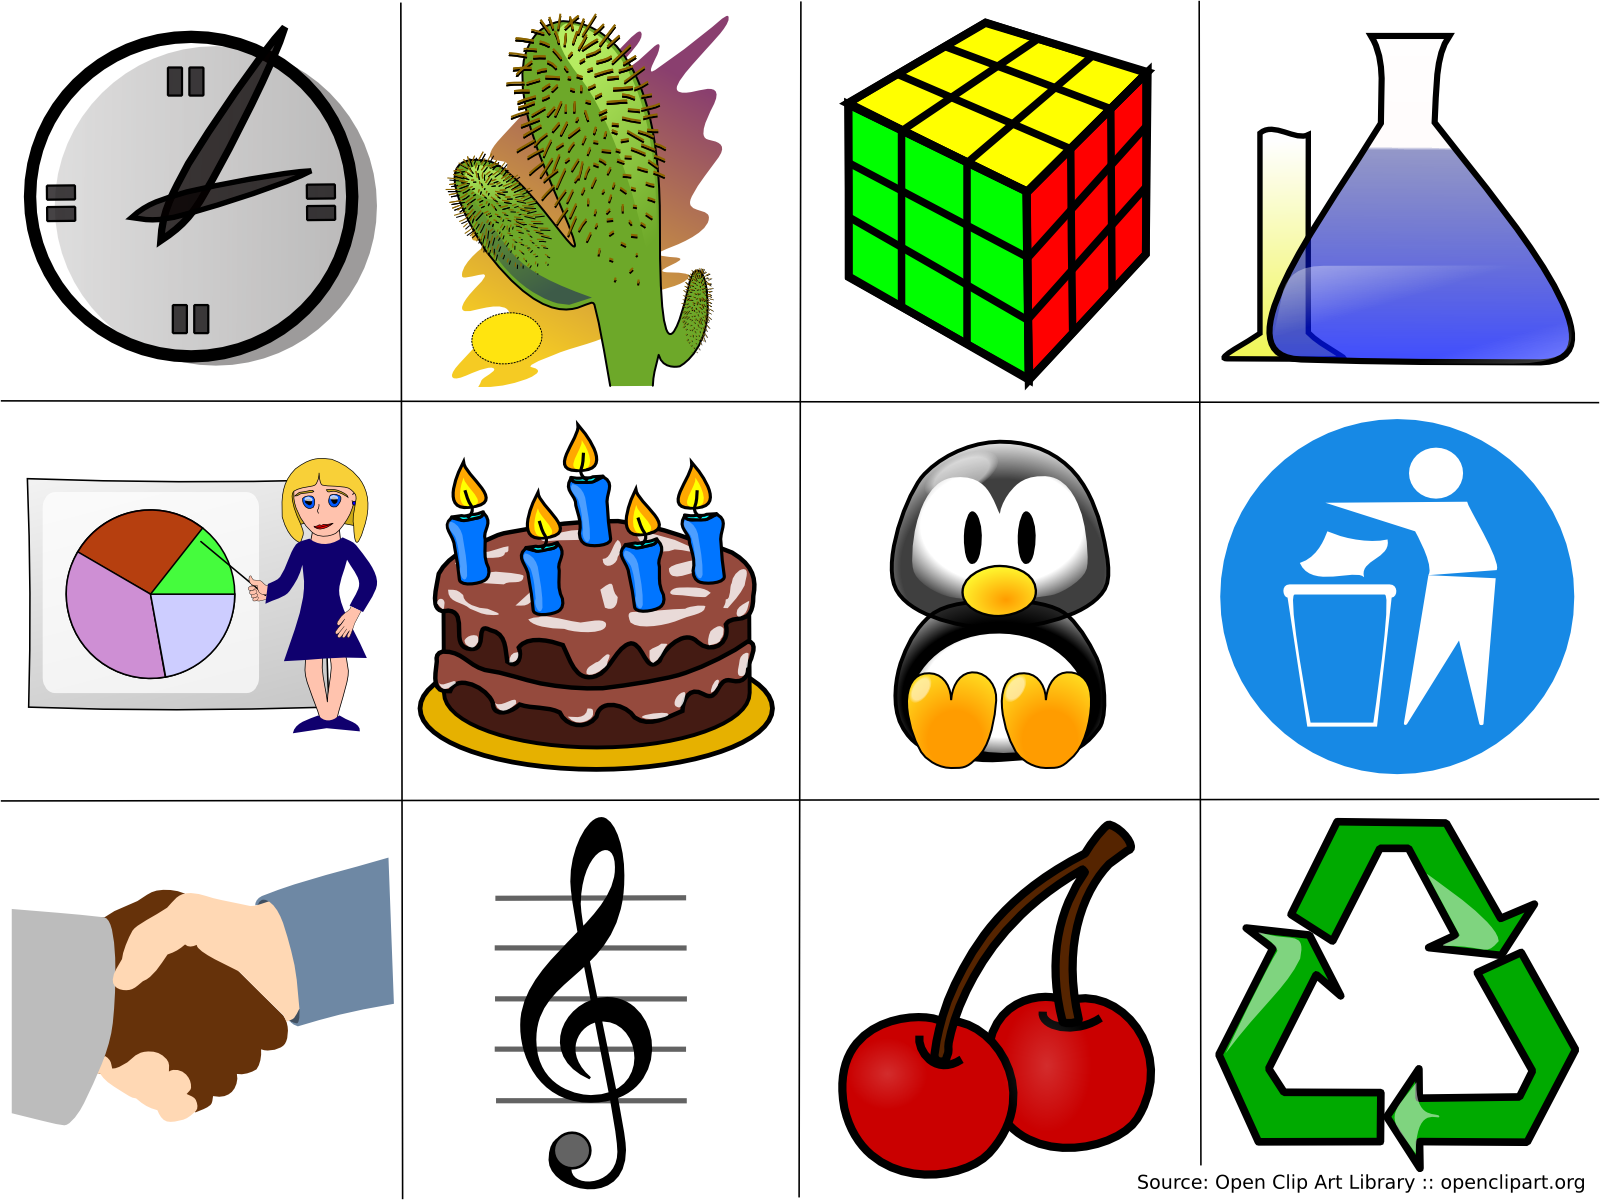 File:Cliparts (examples).png